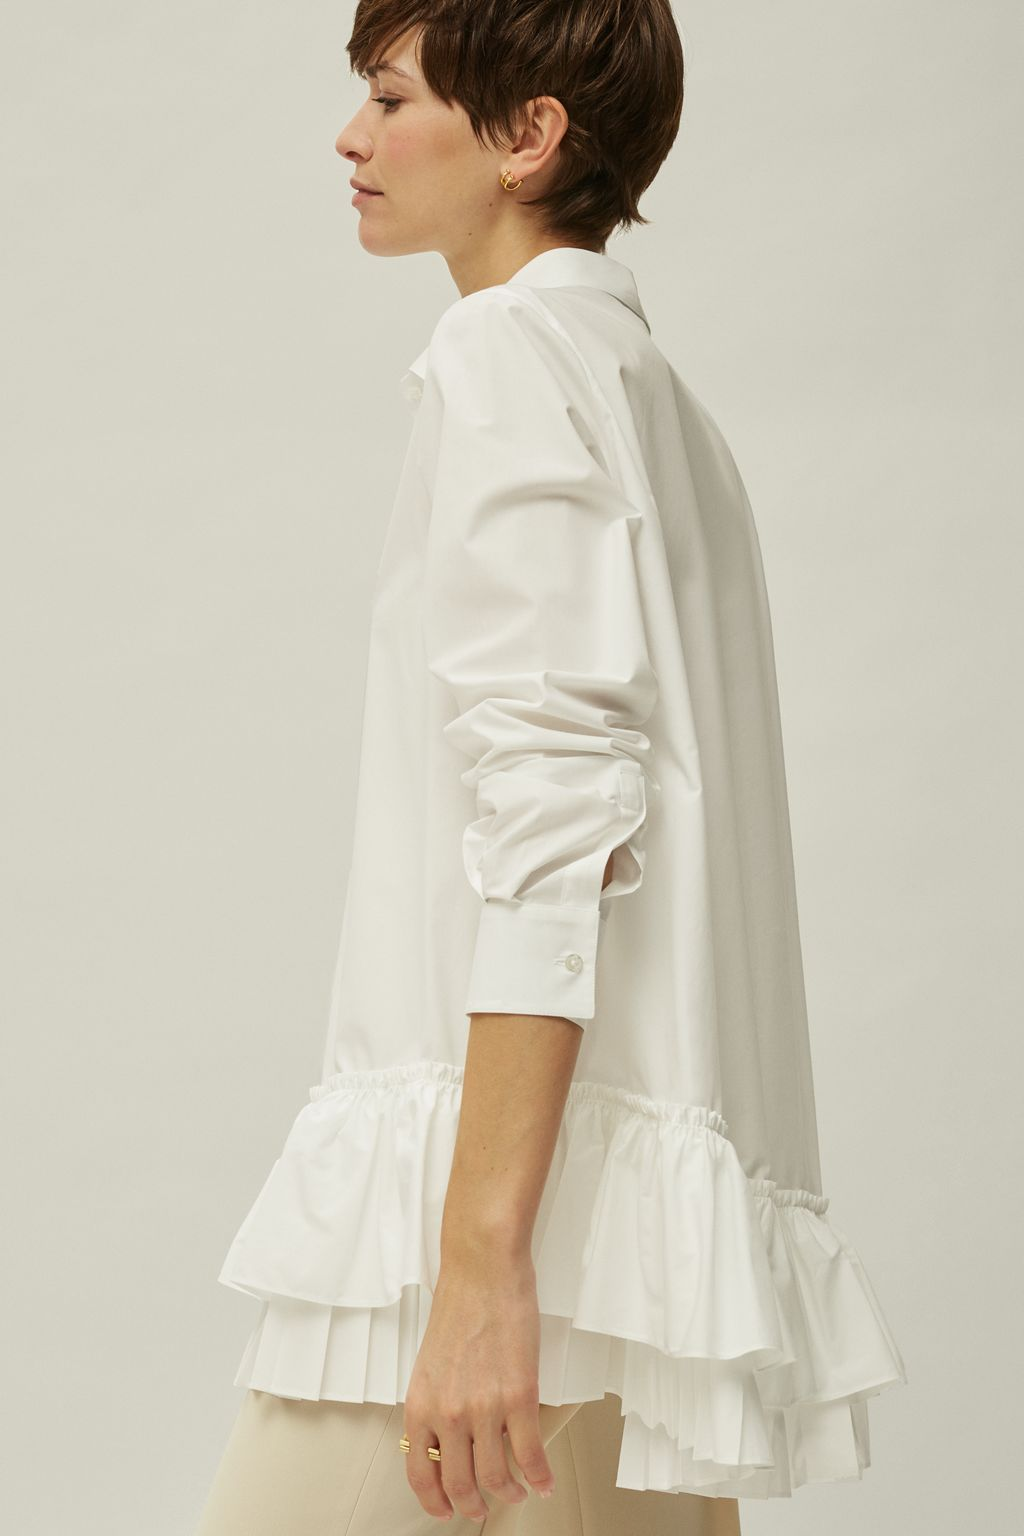 White Shirt with tiered ruffles